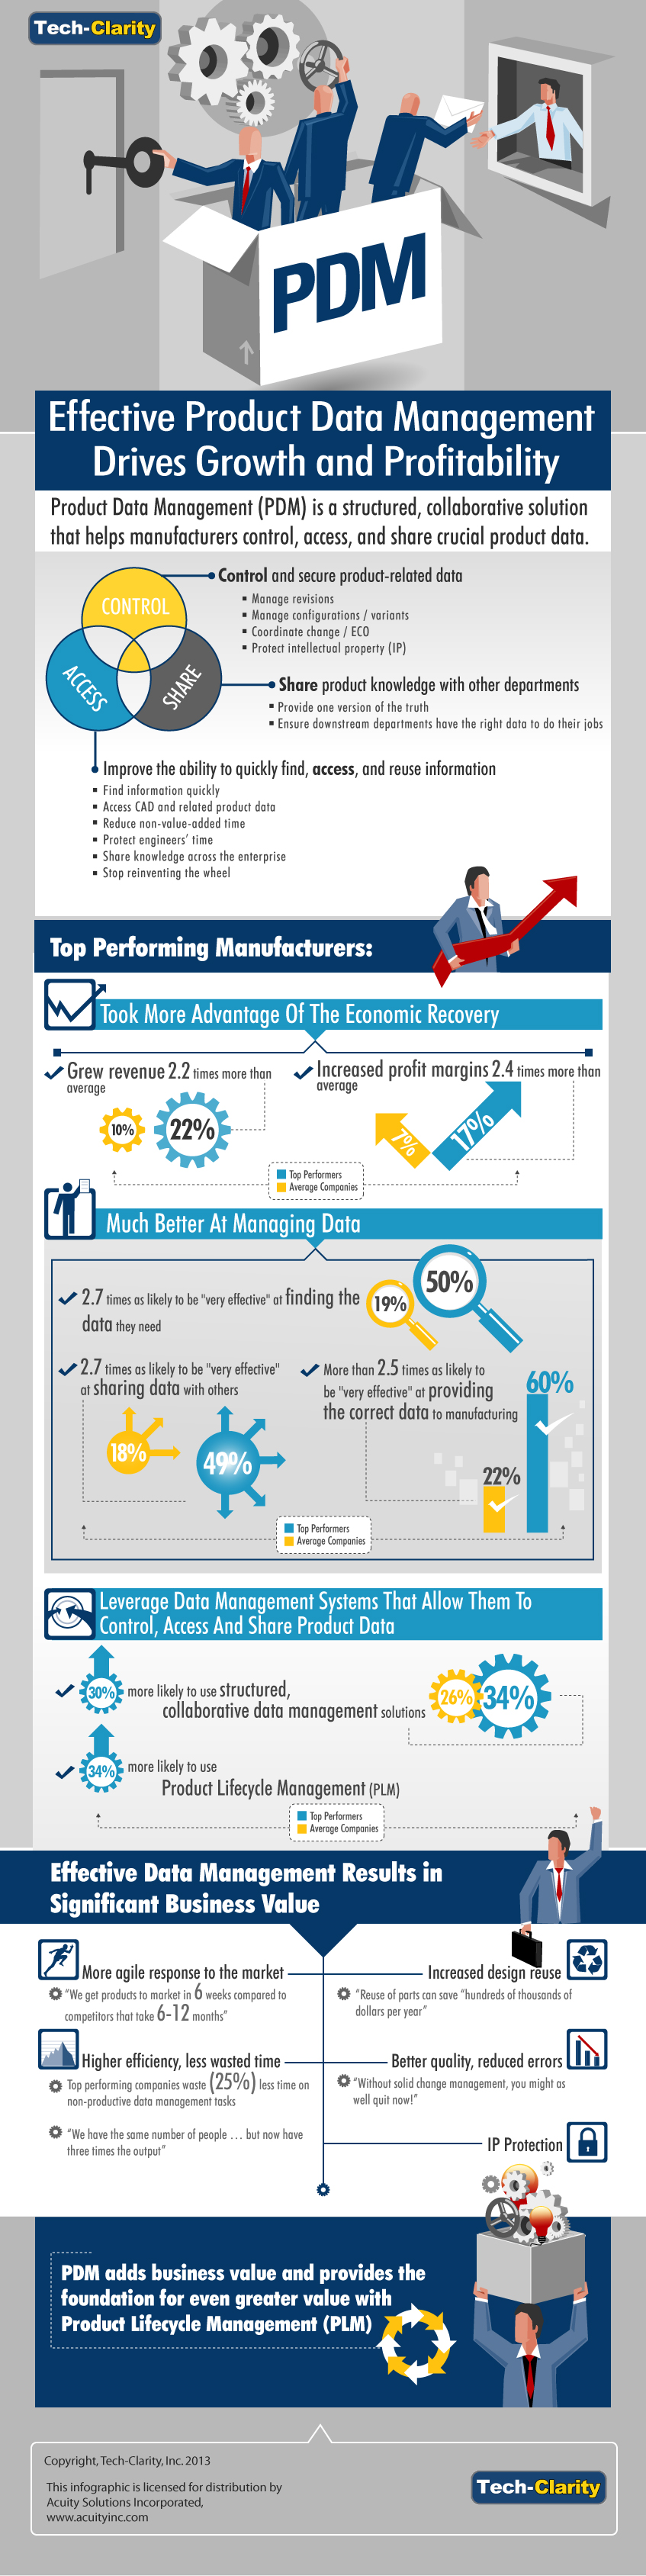 Tech-Clarity-Infographic-PDM-Value